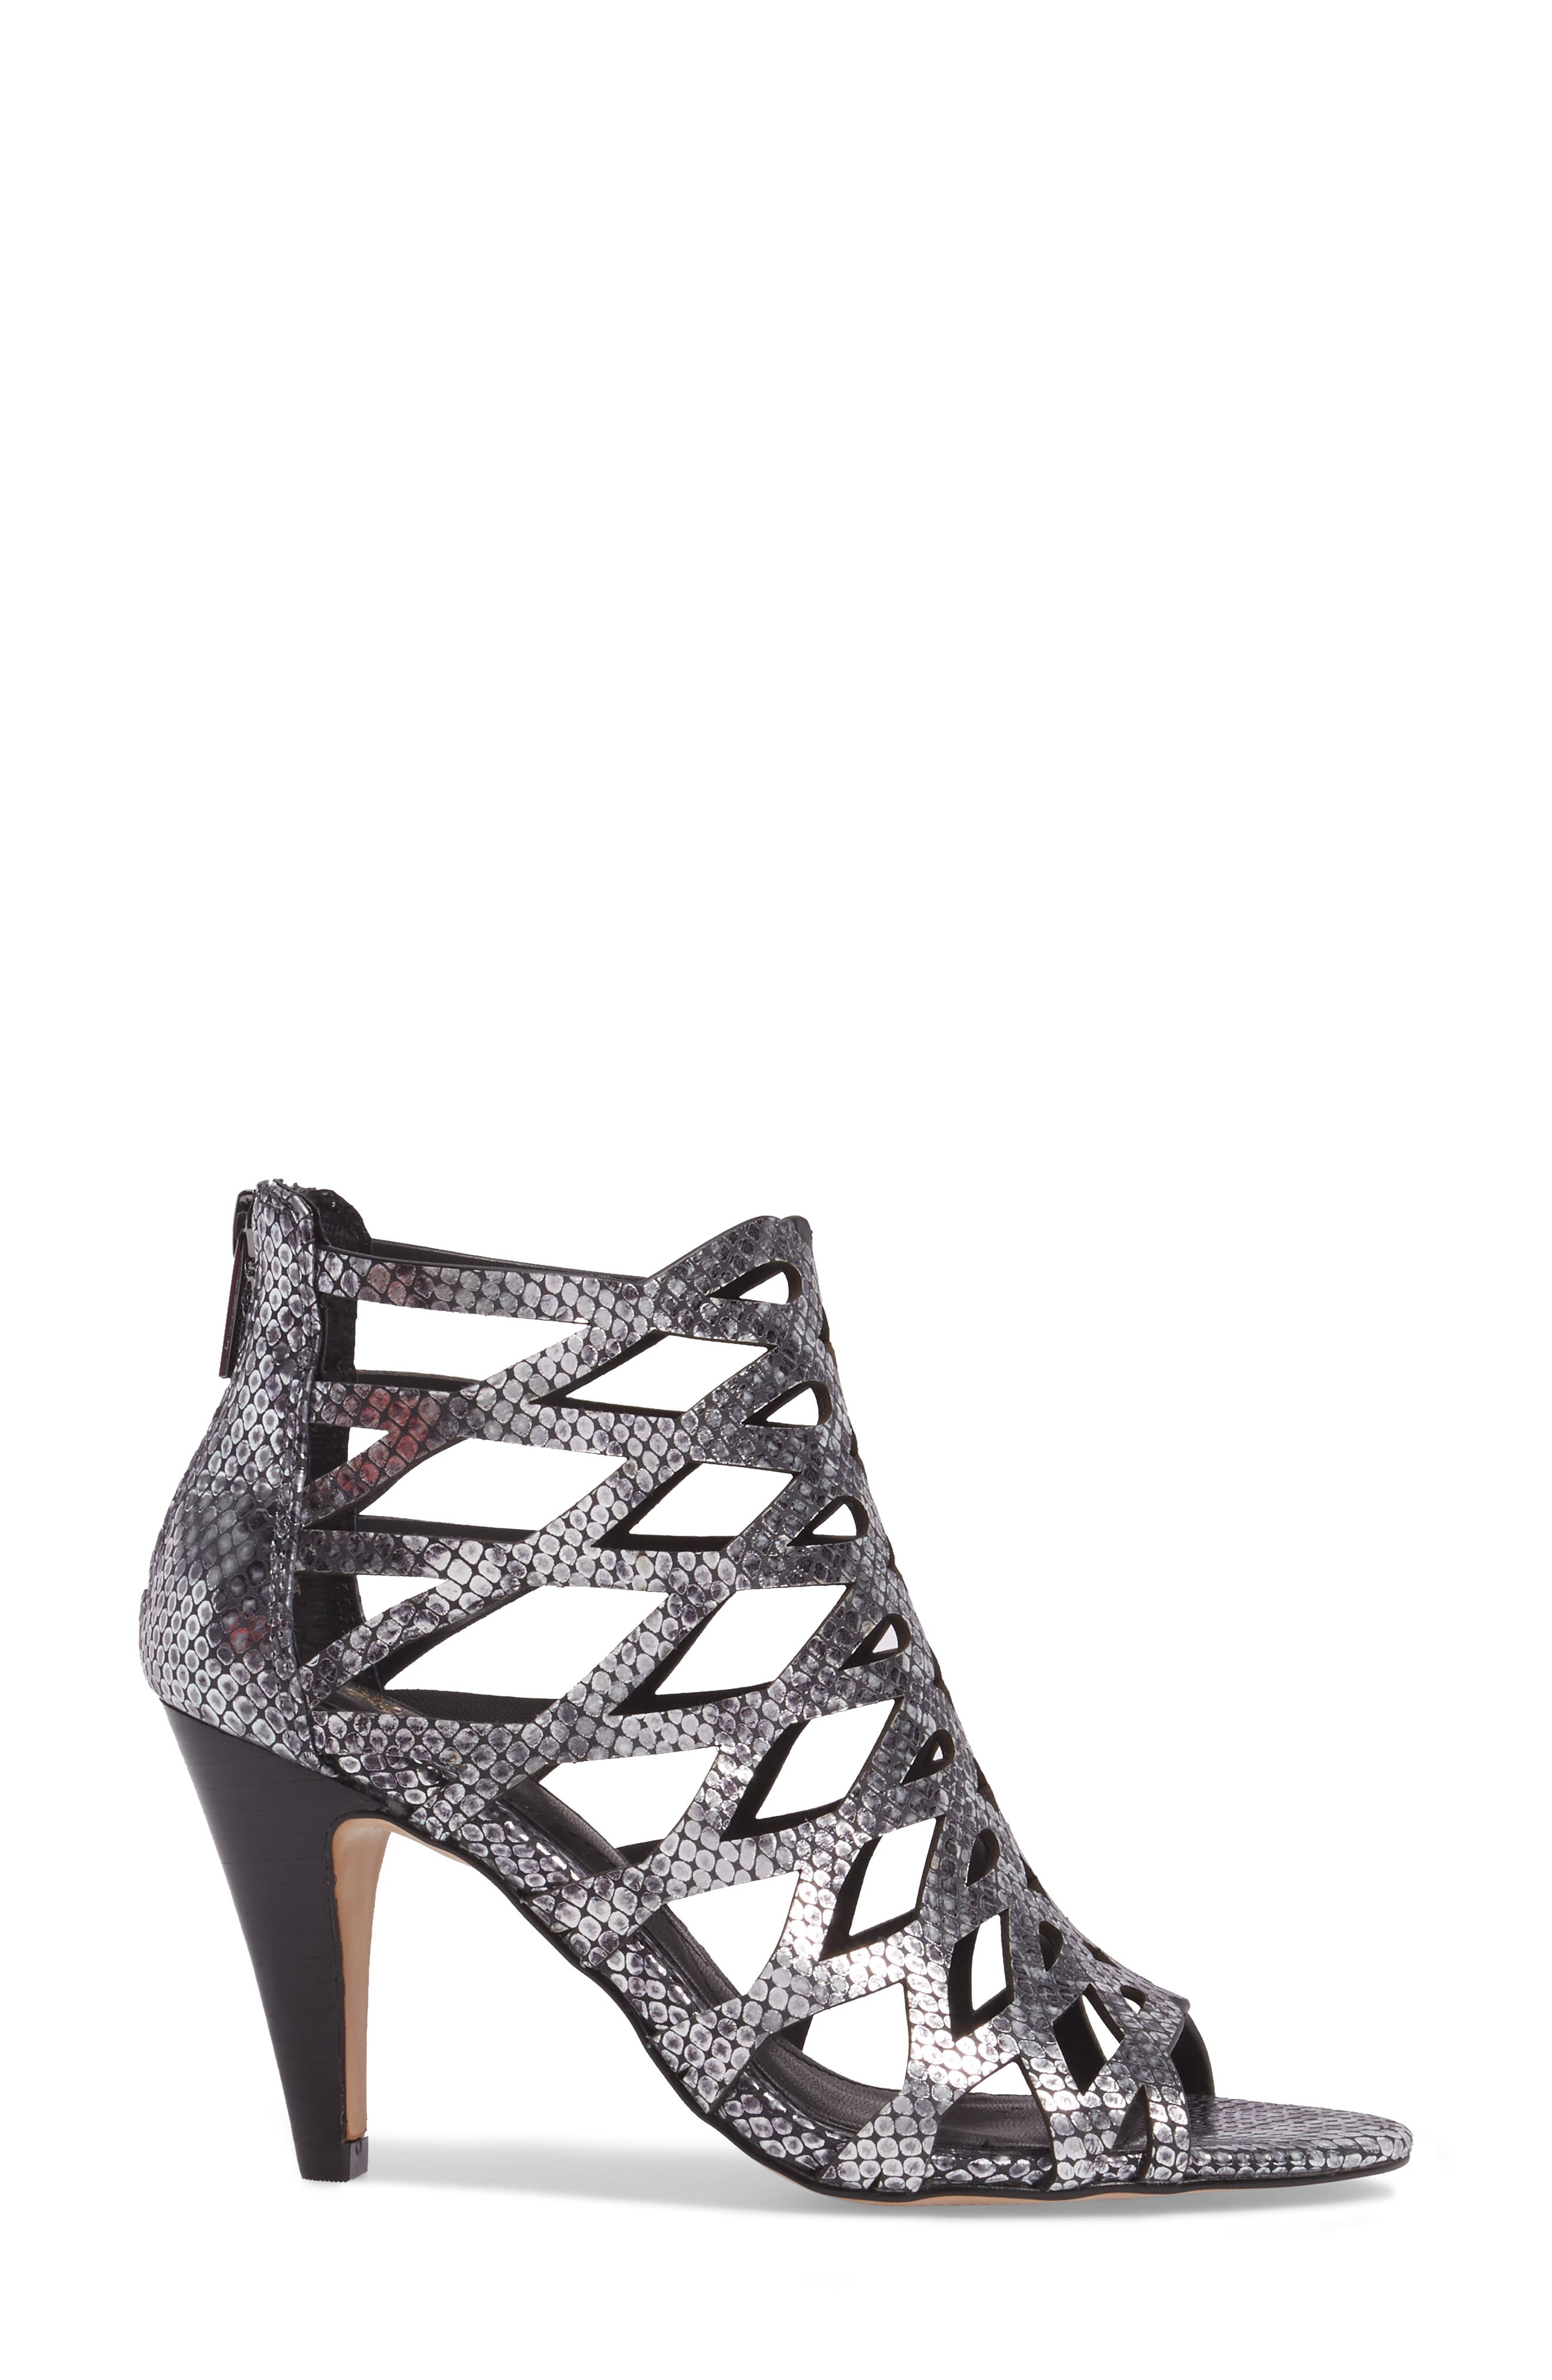 Debra Cage Sandal,                             Alternate thumbnail 3, color,                             ANTHRACITE SNAKE PRINT LEATHER